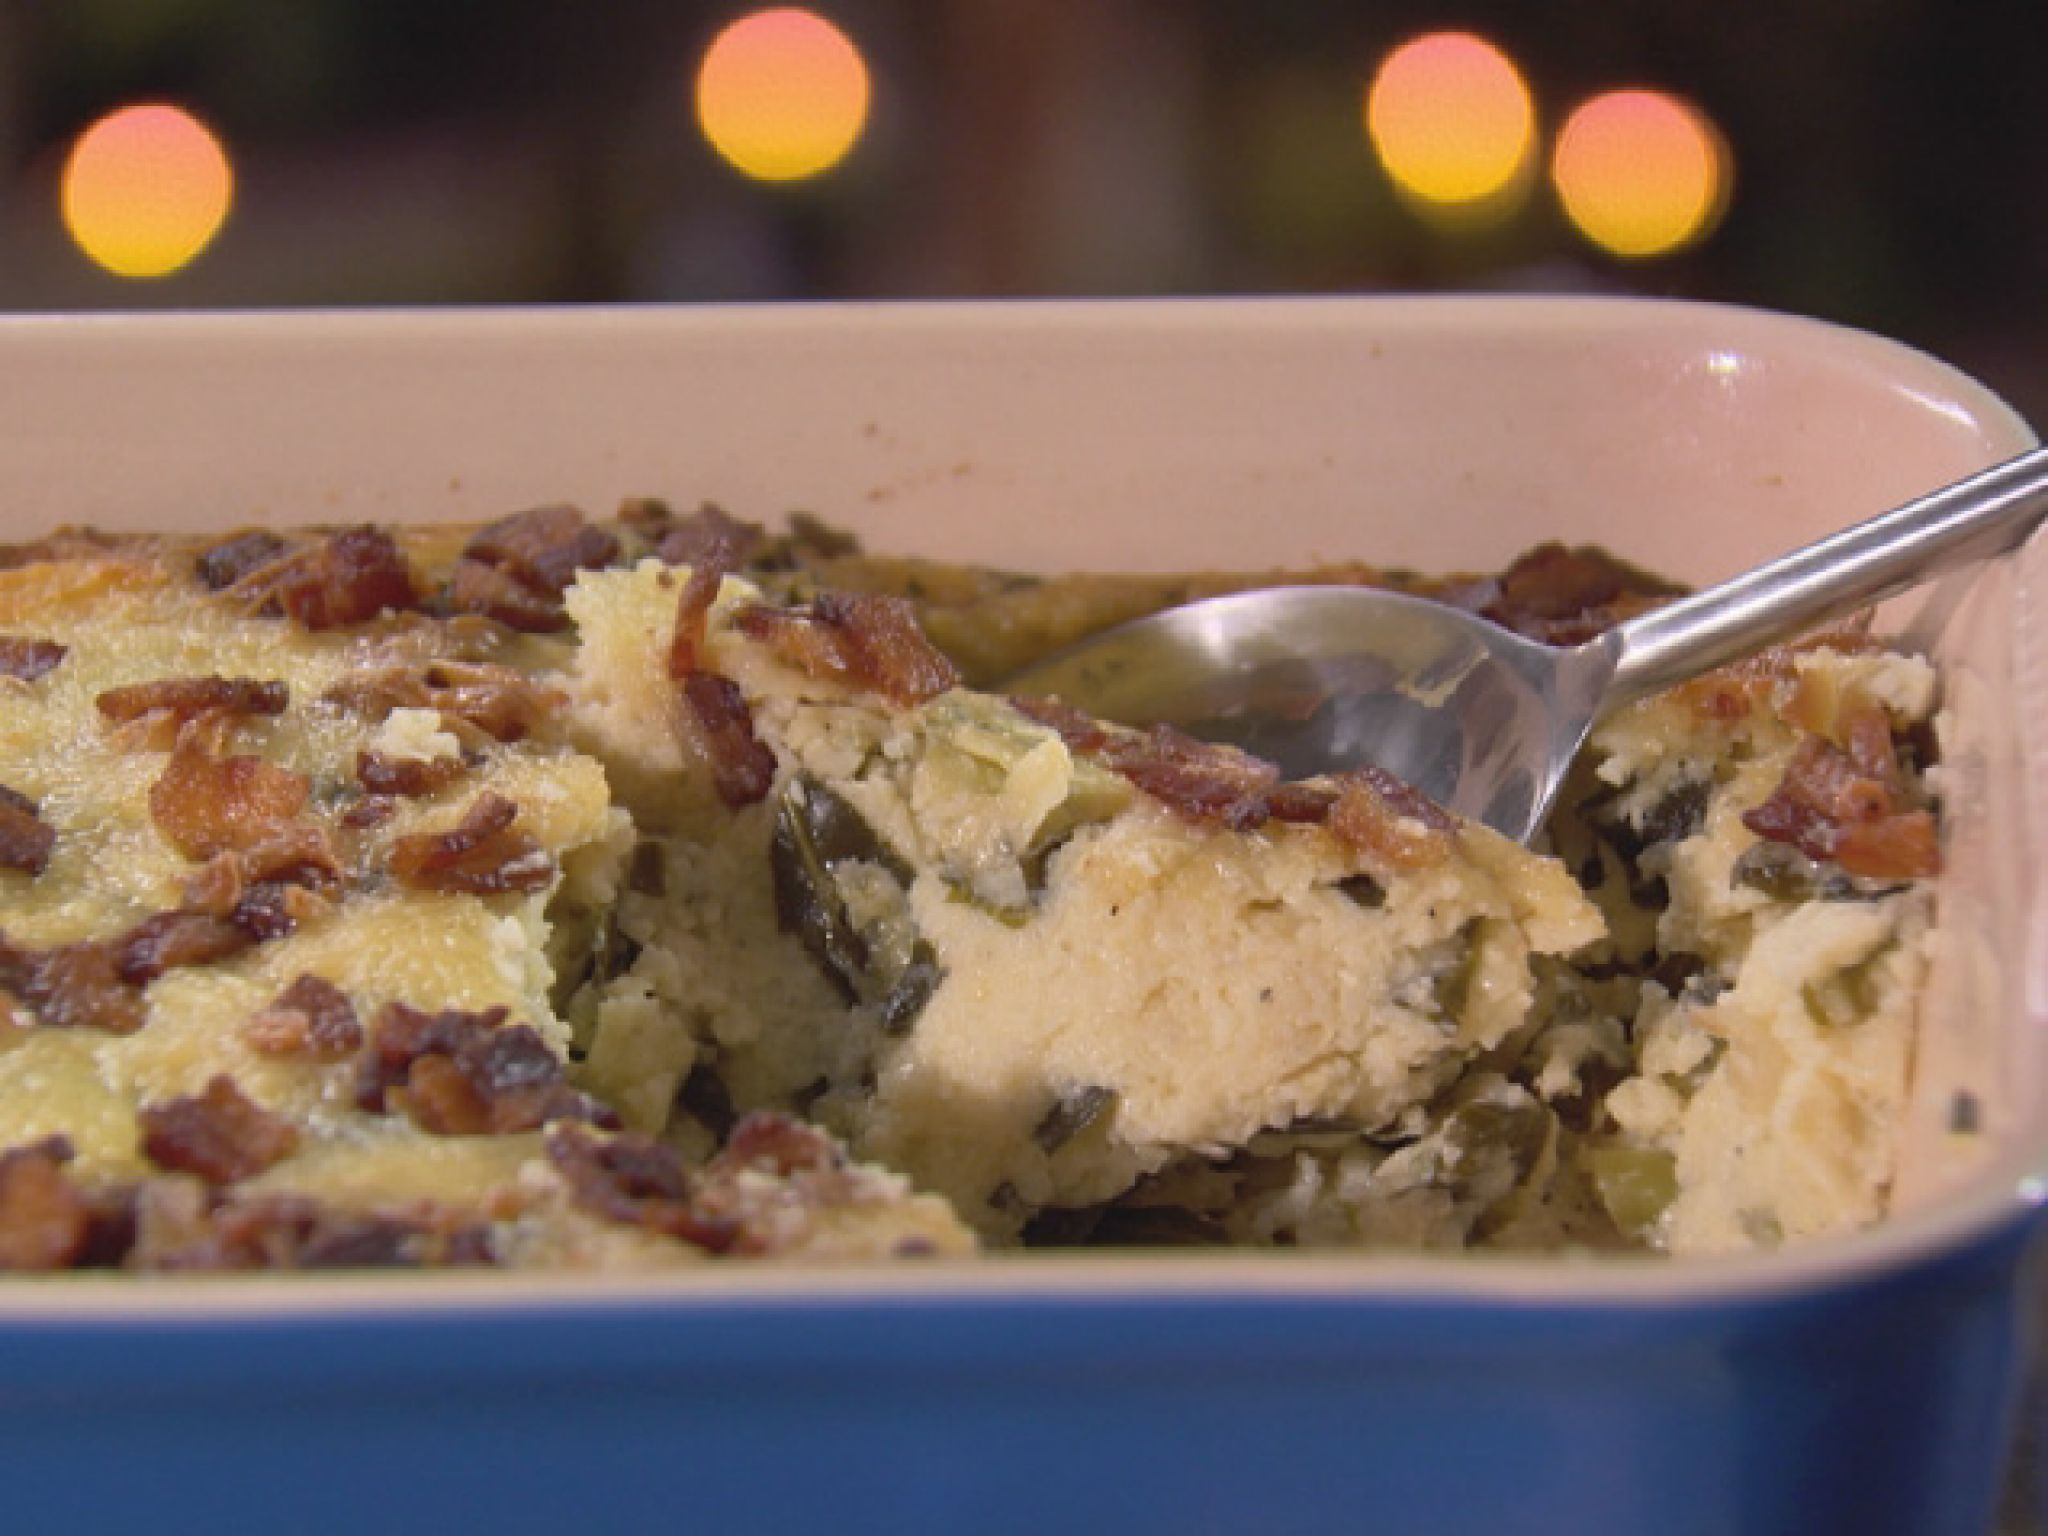 Grits and greens casserole recipe trisha yearwood casserole favorite recipes forumfinder Image collections